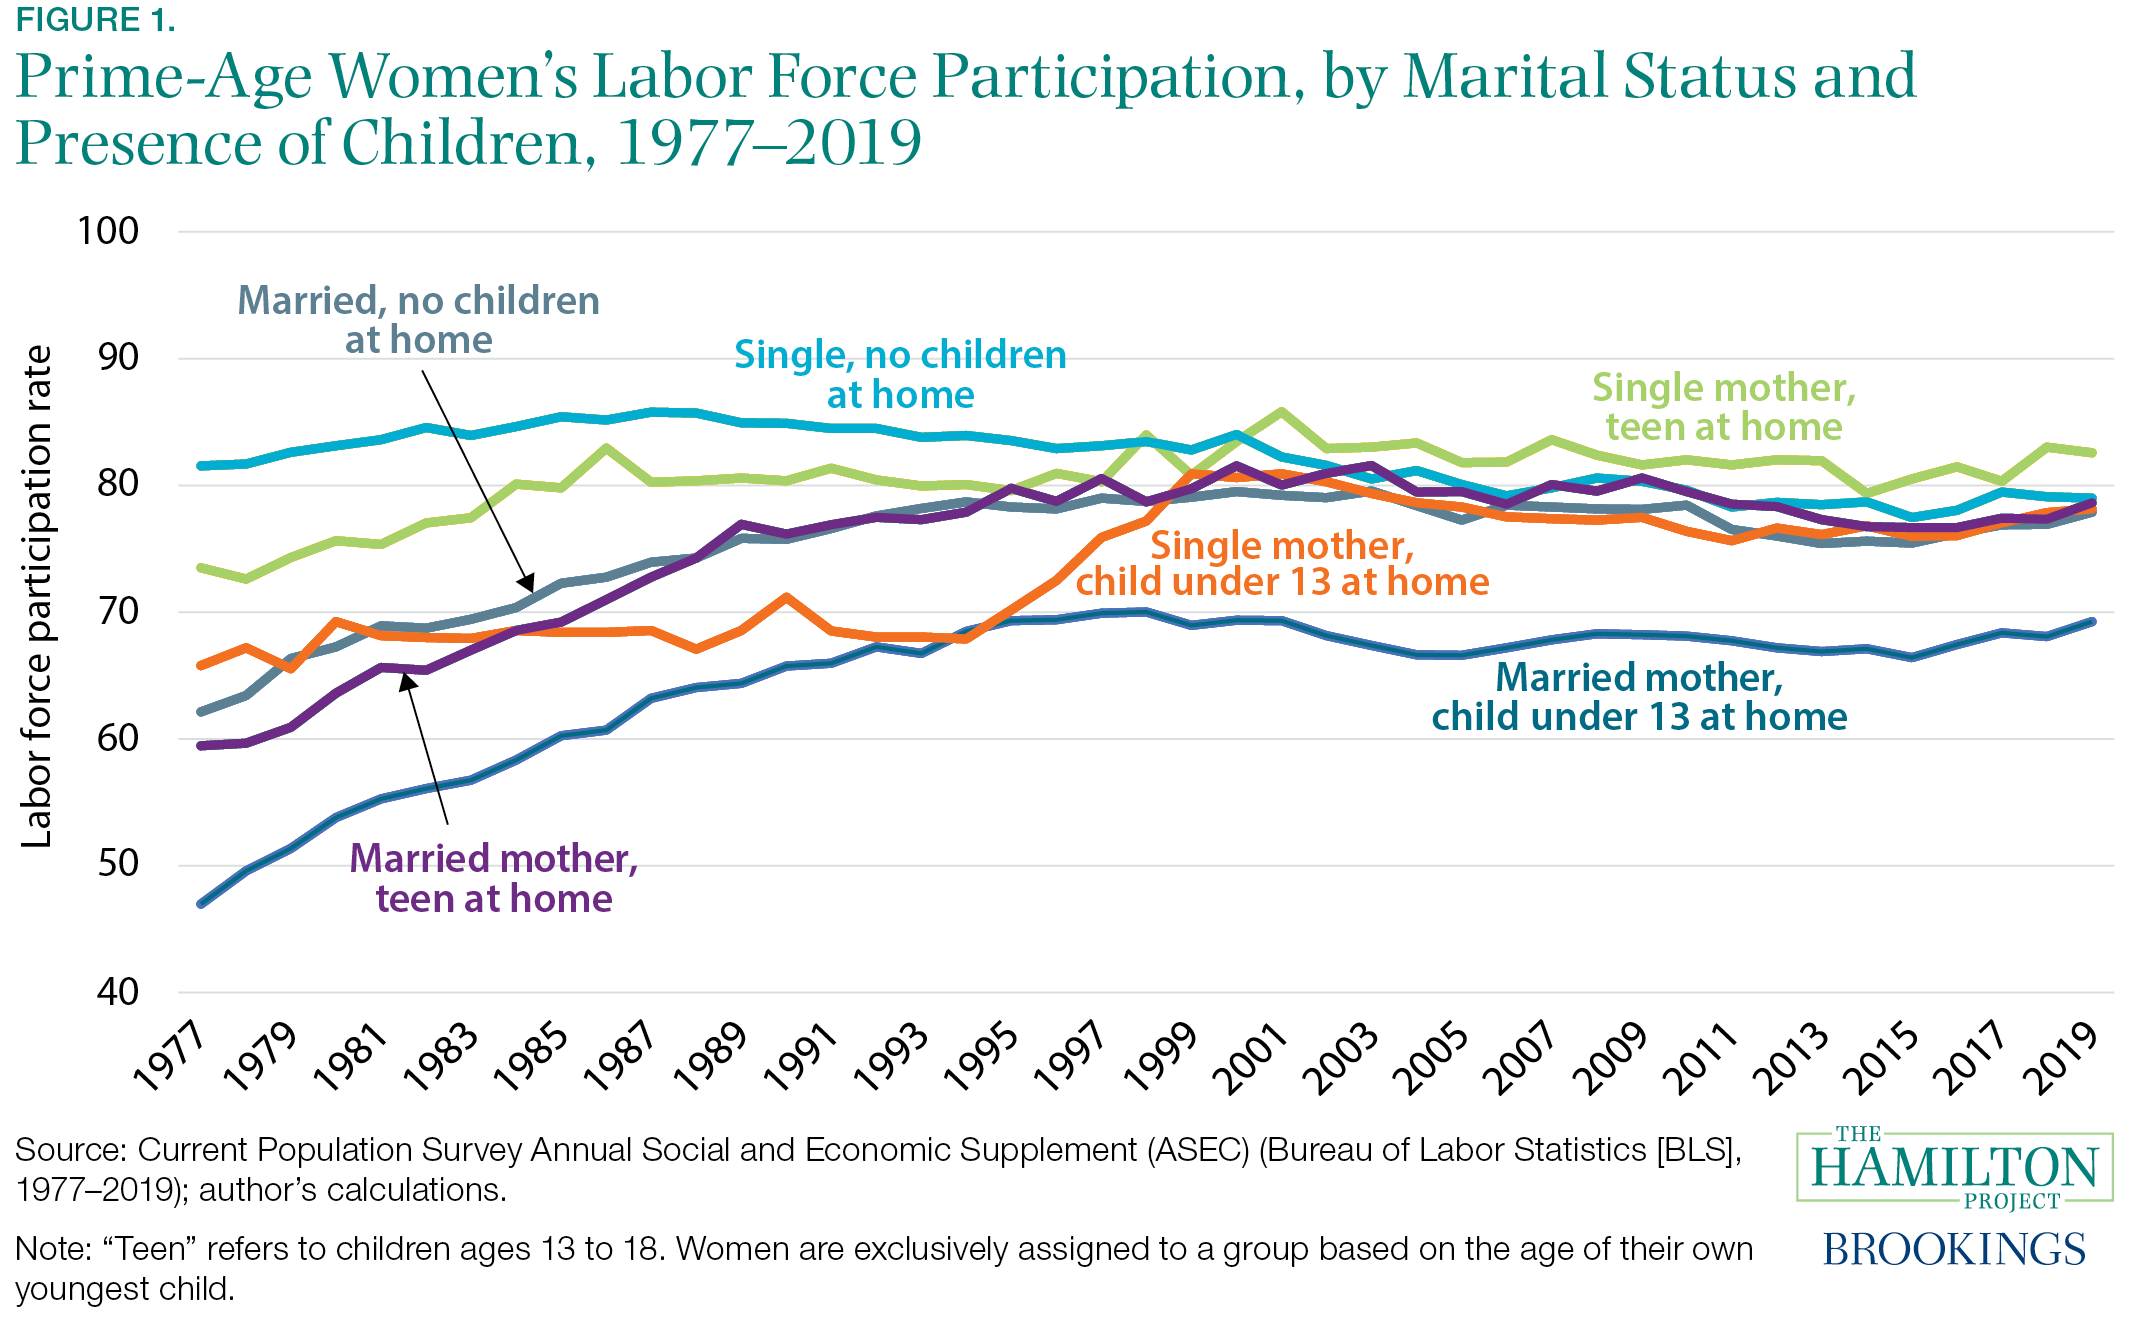 Fact 1: Through 2019, labor force participation rates of prime-age women had converged, with the exception of married mothers of young children.